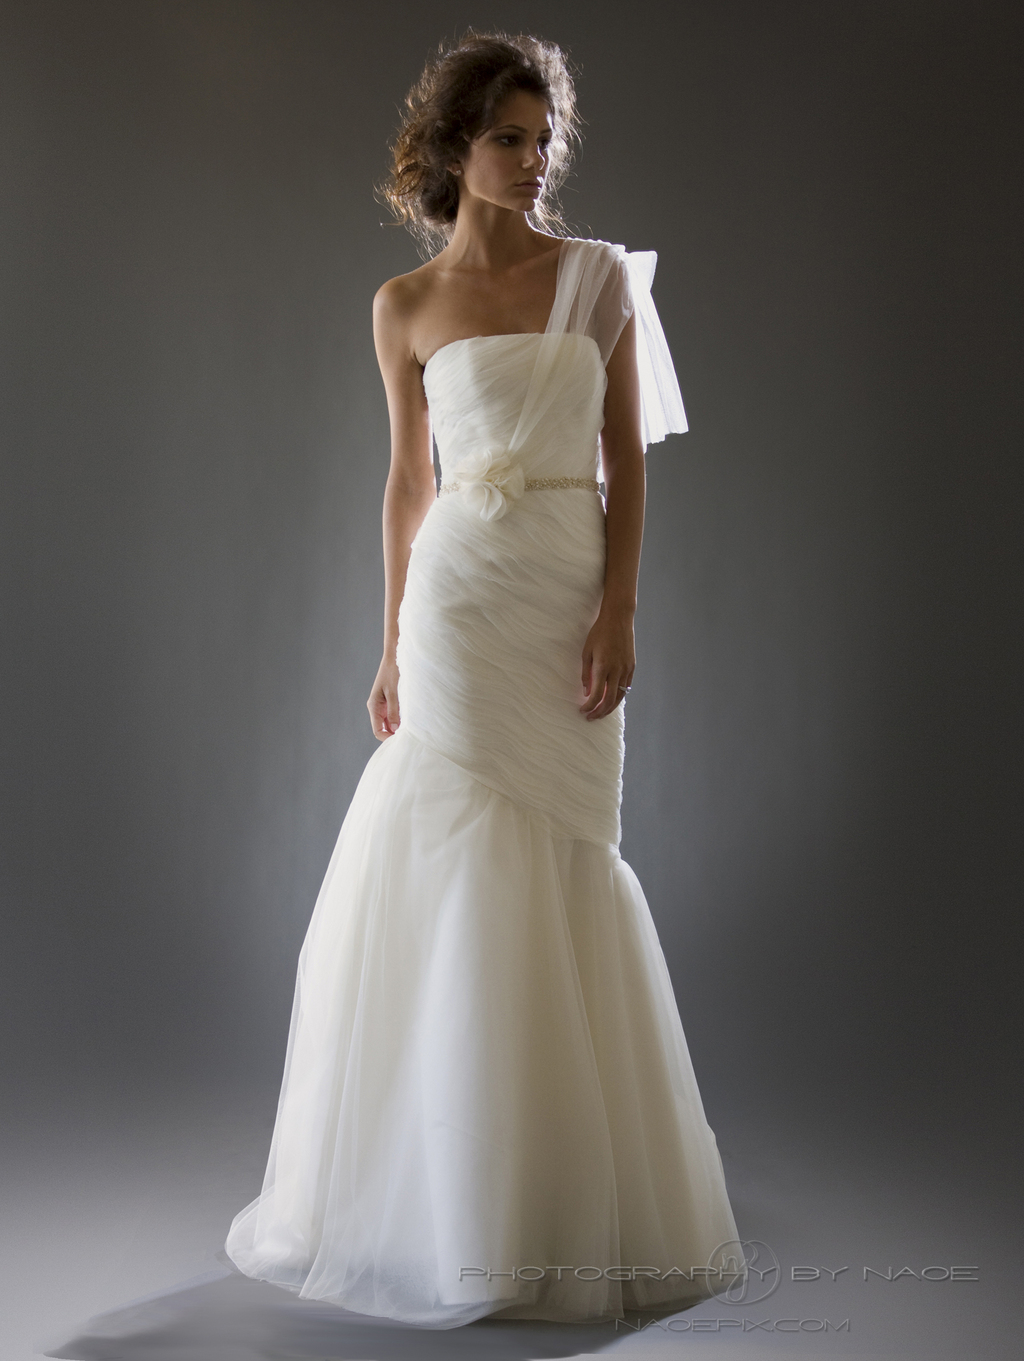 Wedding-dress-spring-2013-bridal_gown-cocoe-voci-6.full